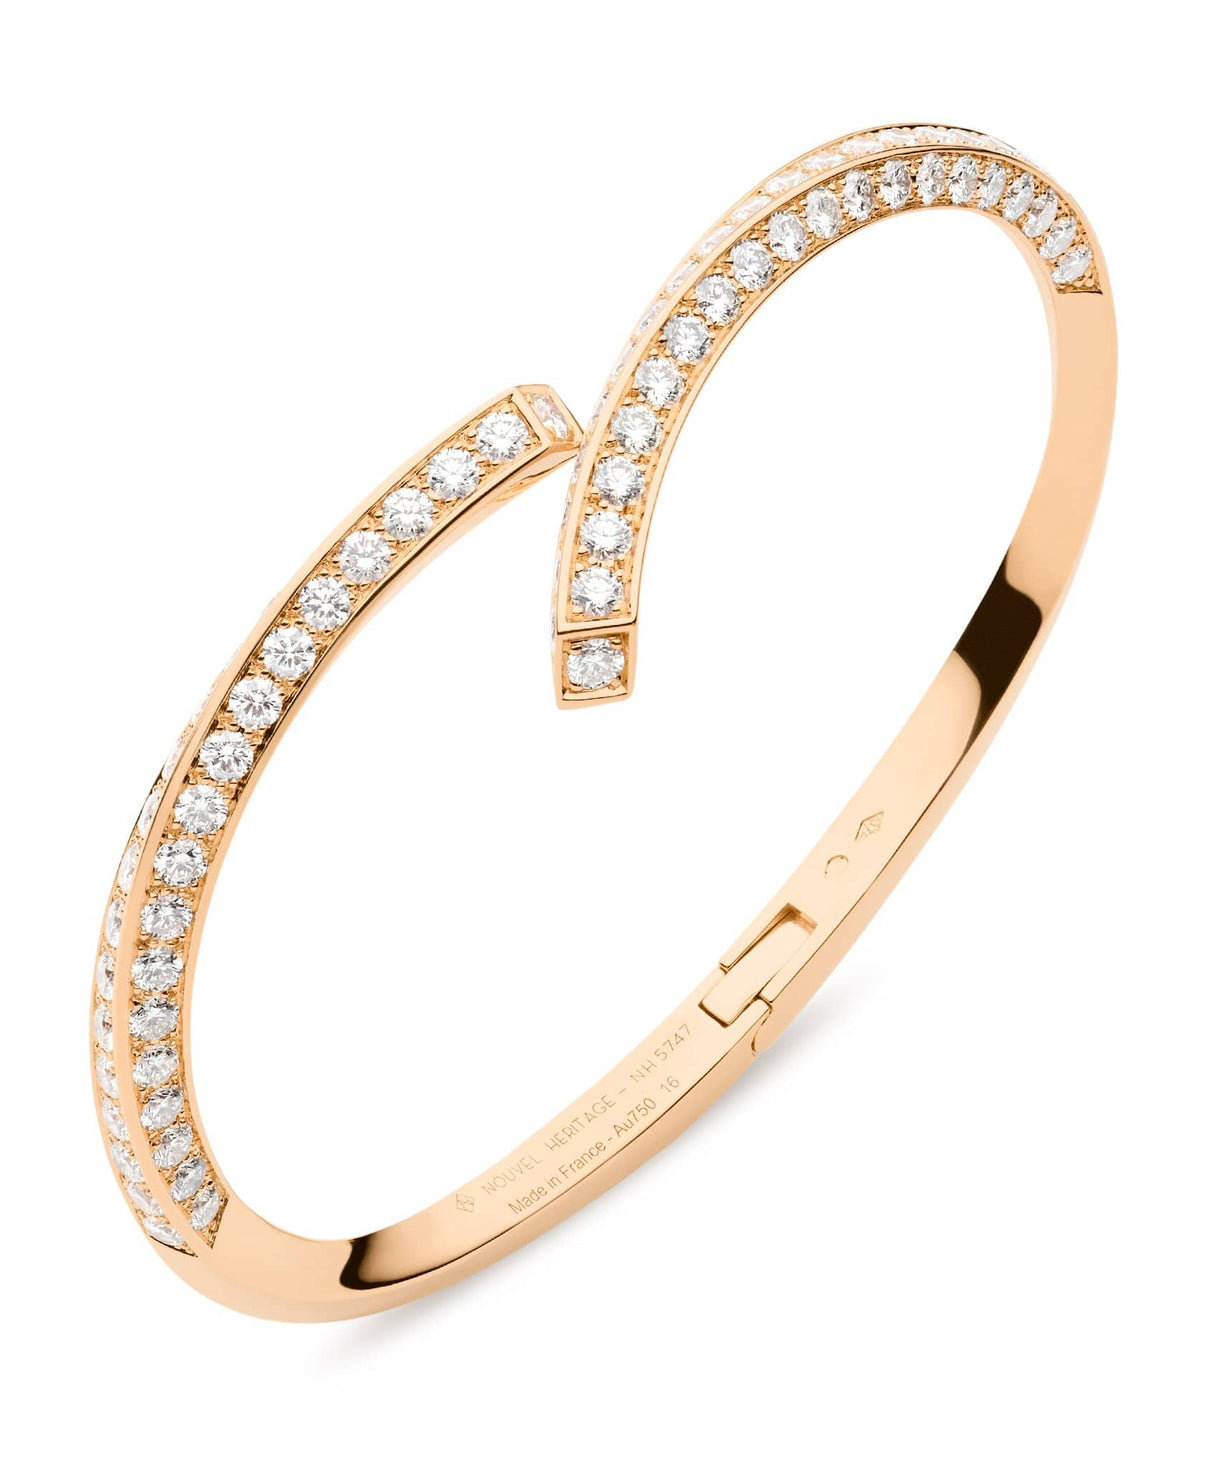 Diamond Thread Bangle: Discover Luxury Fine Jewelry | Nouvel Heritage